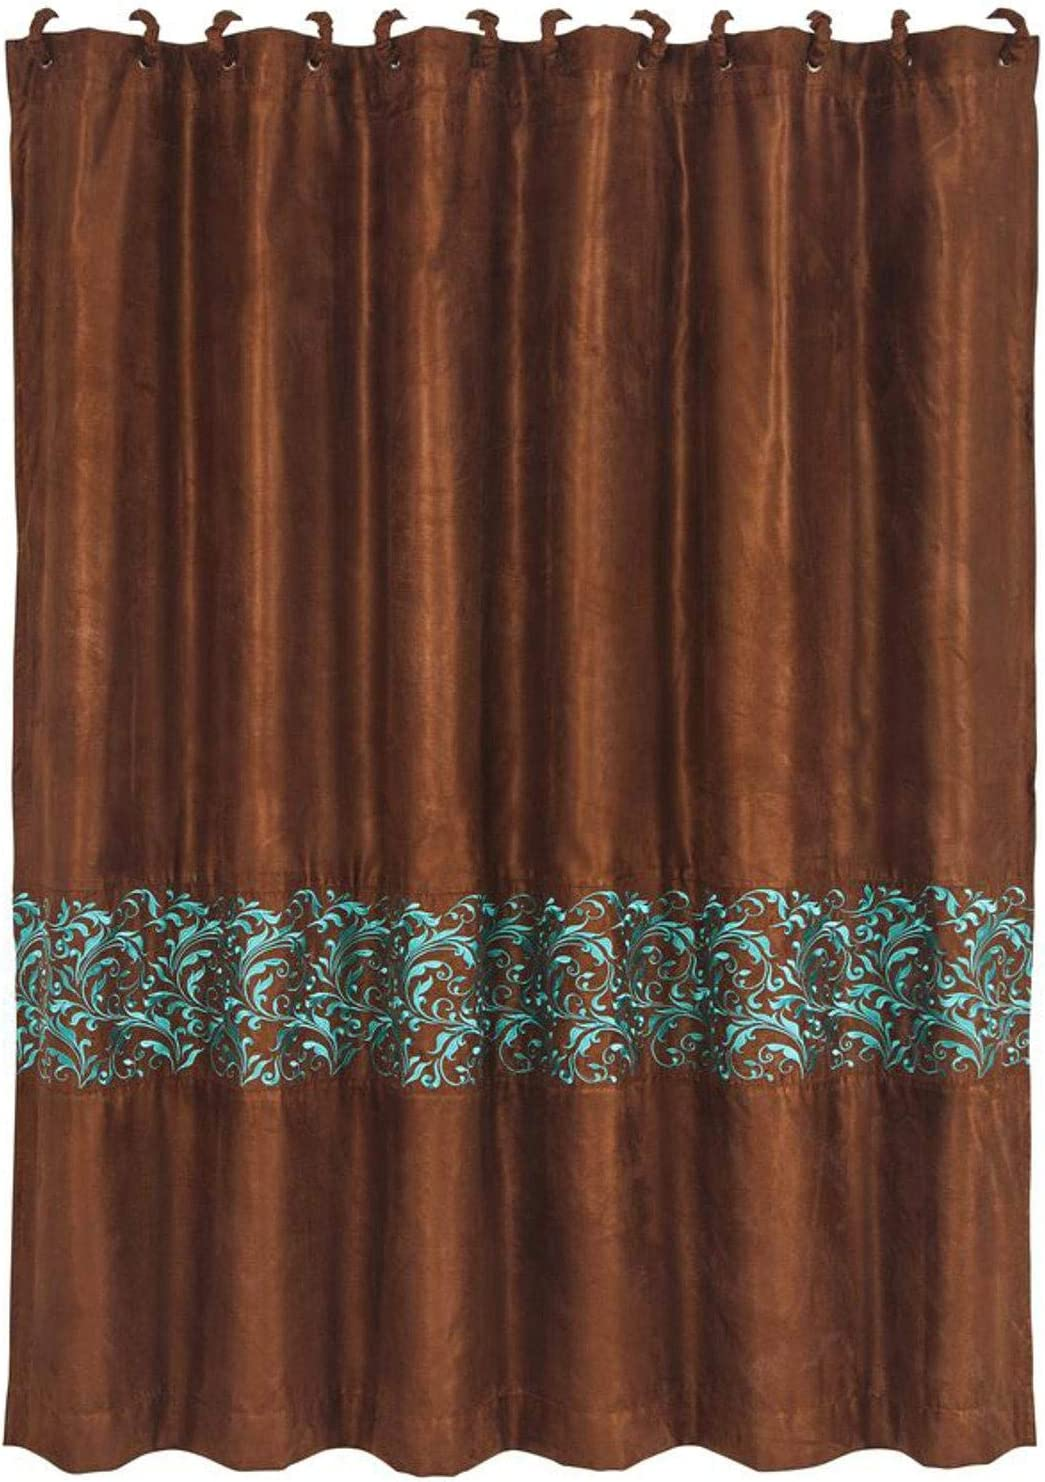 "HiEnd Accents Wyatt Copper Taffeta-Style Curtain w/Turquoise Scrollwork [Includes 12 Matching Fabric-Covered Shower Rings], 72"" x 72"", Brown"